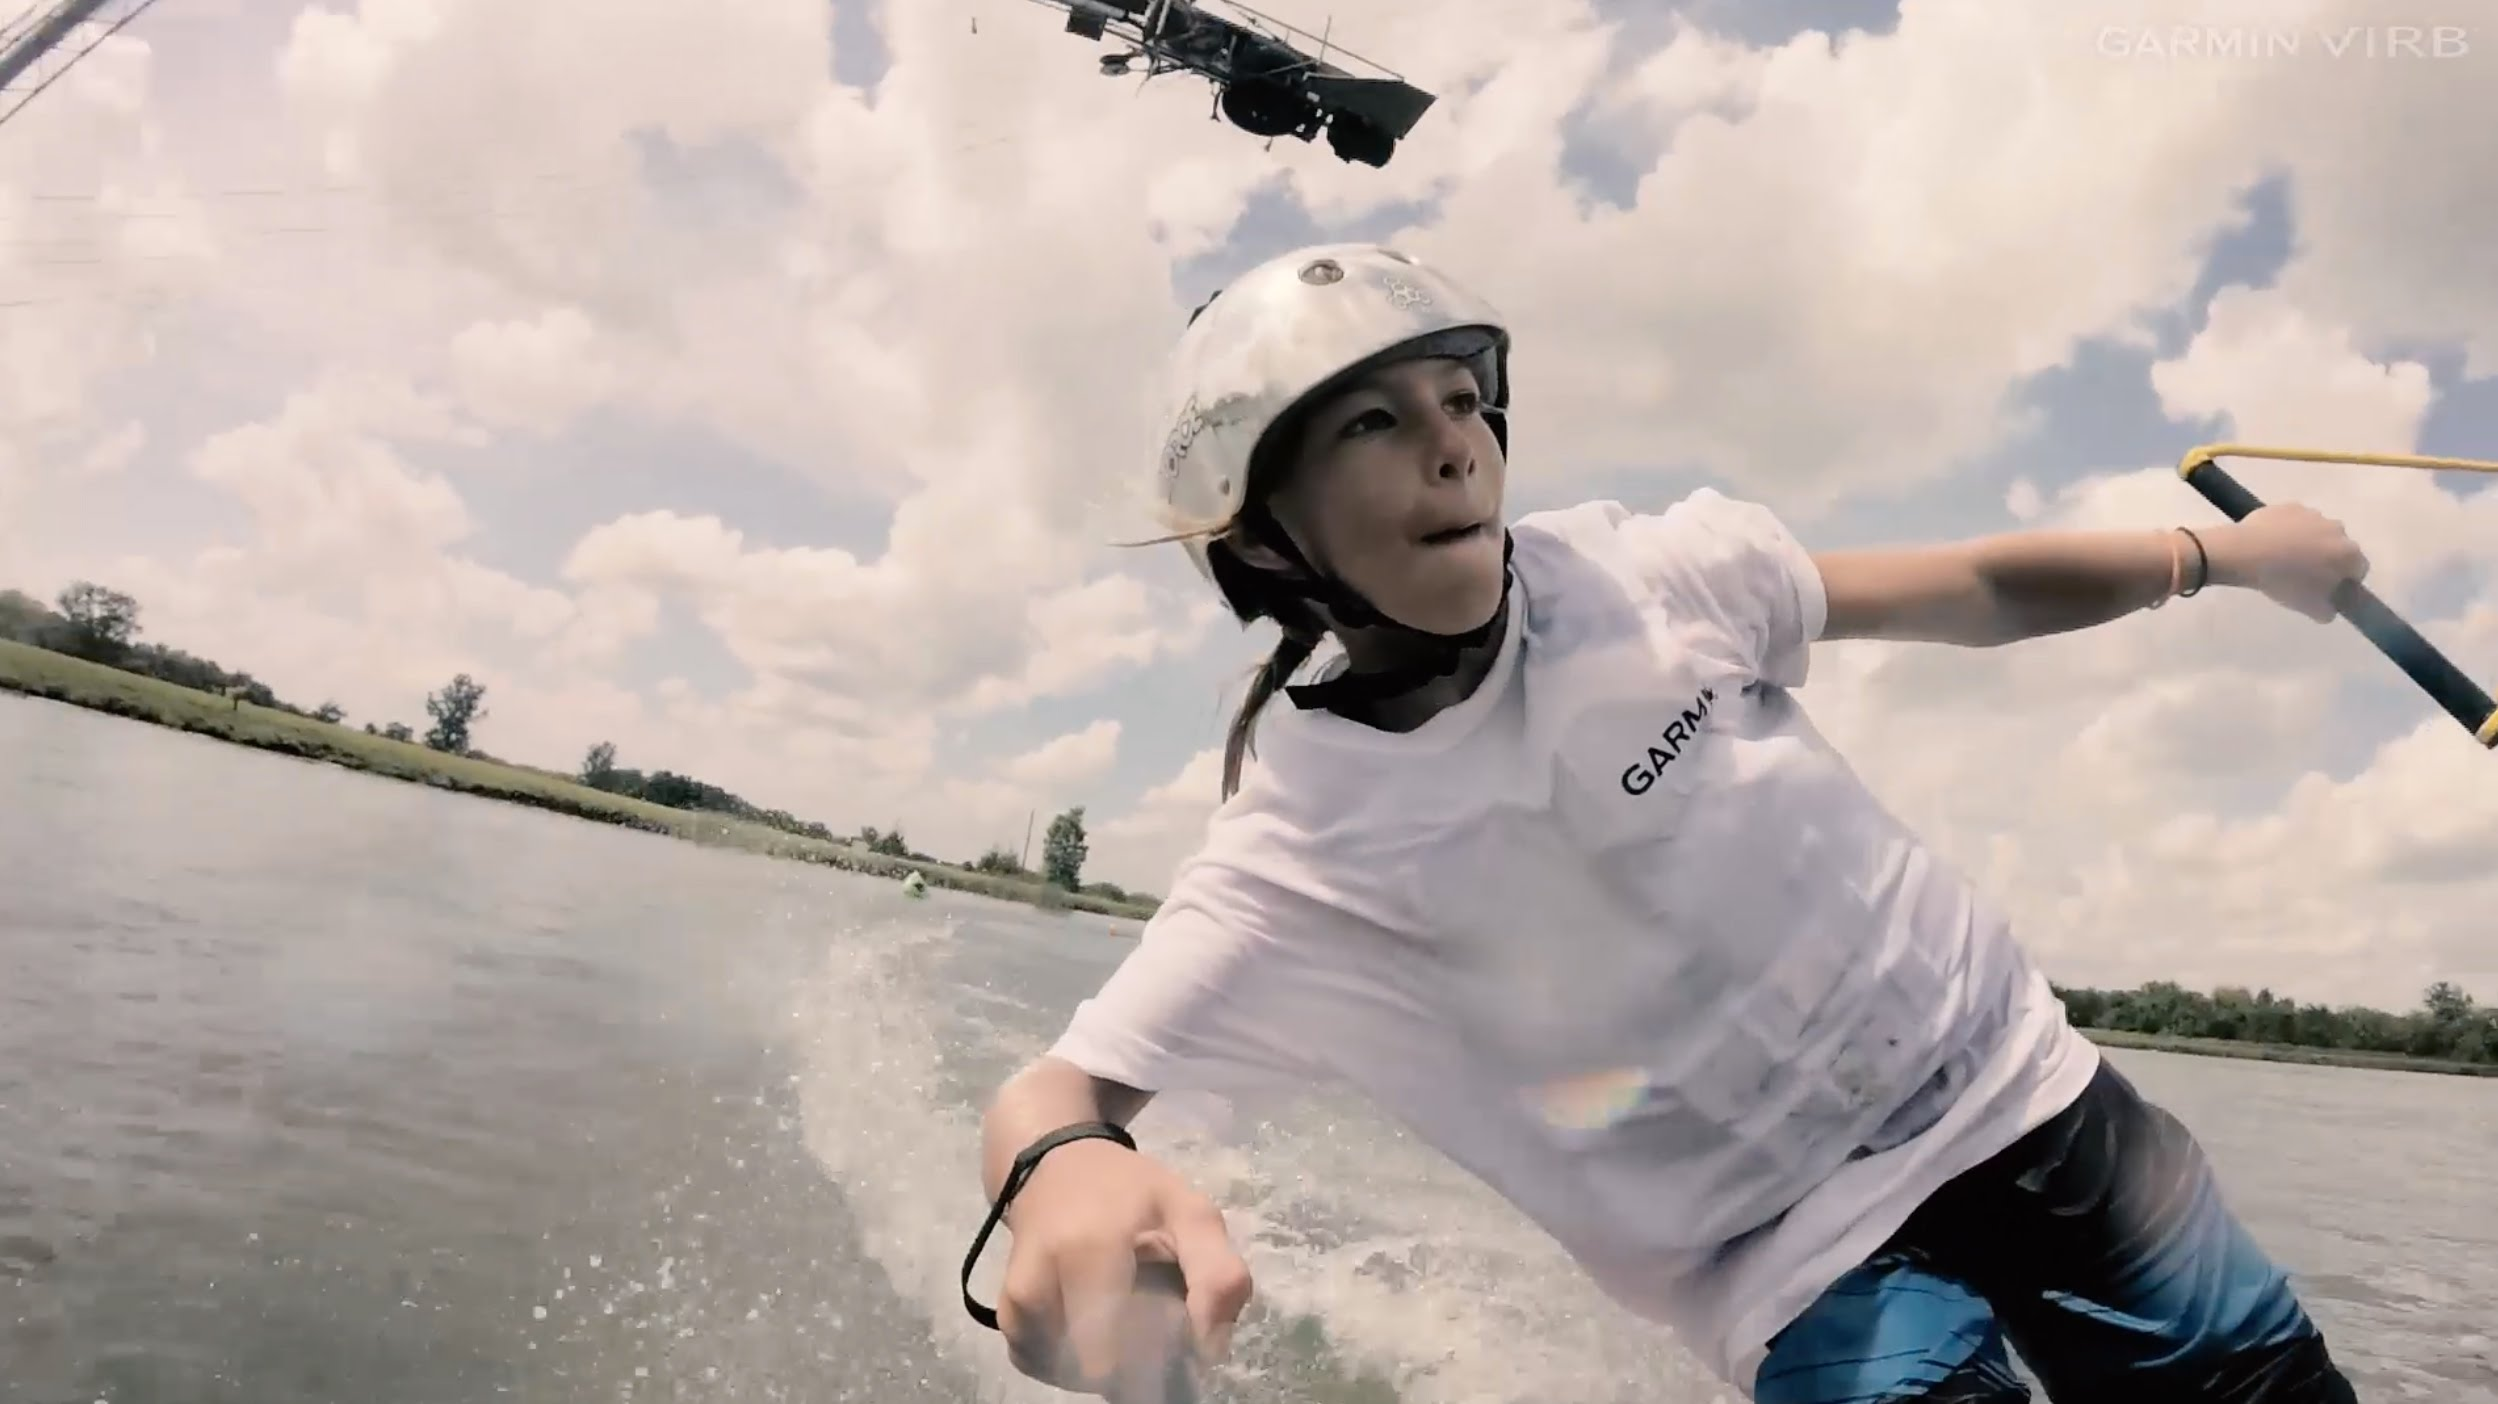 Garmin VIRB XE: Wake Park Session with Brett Powell